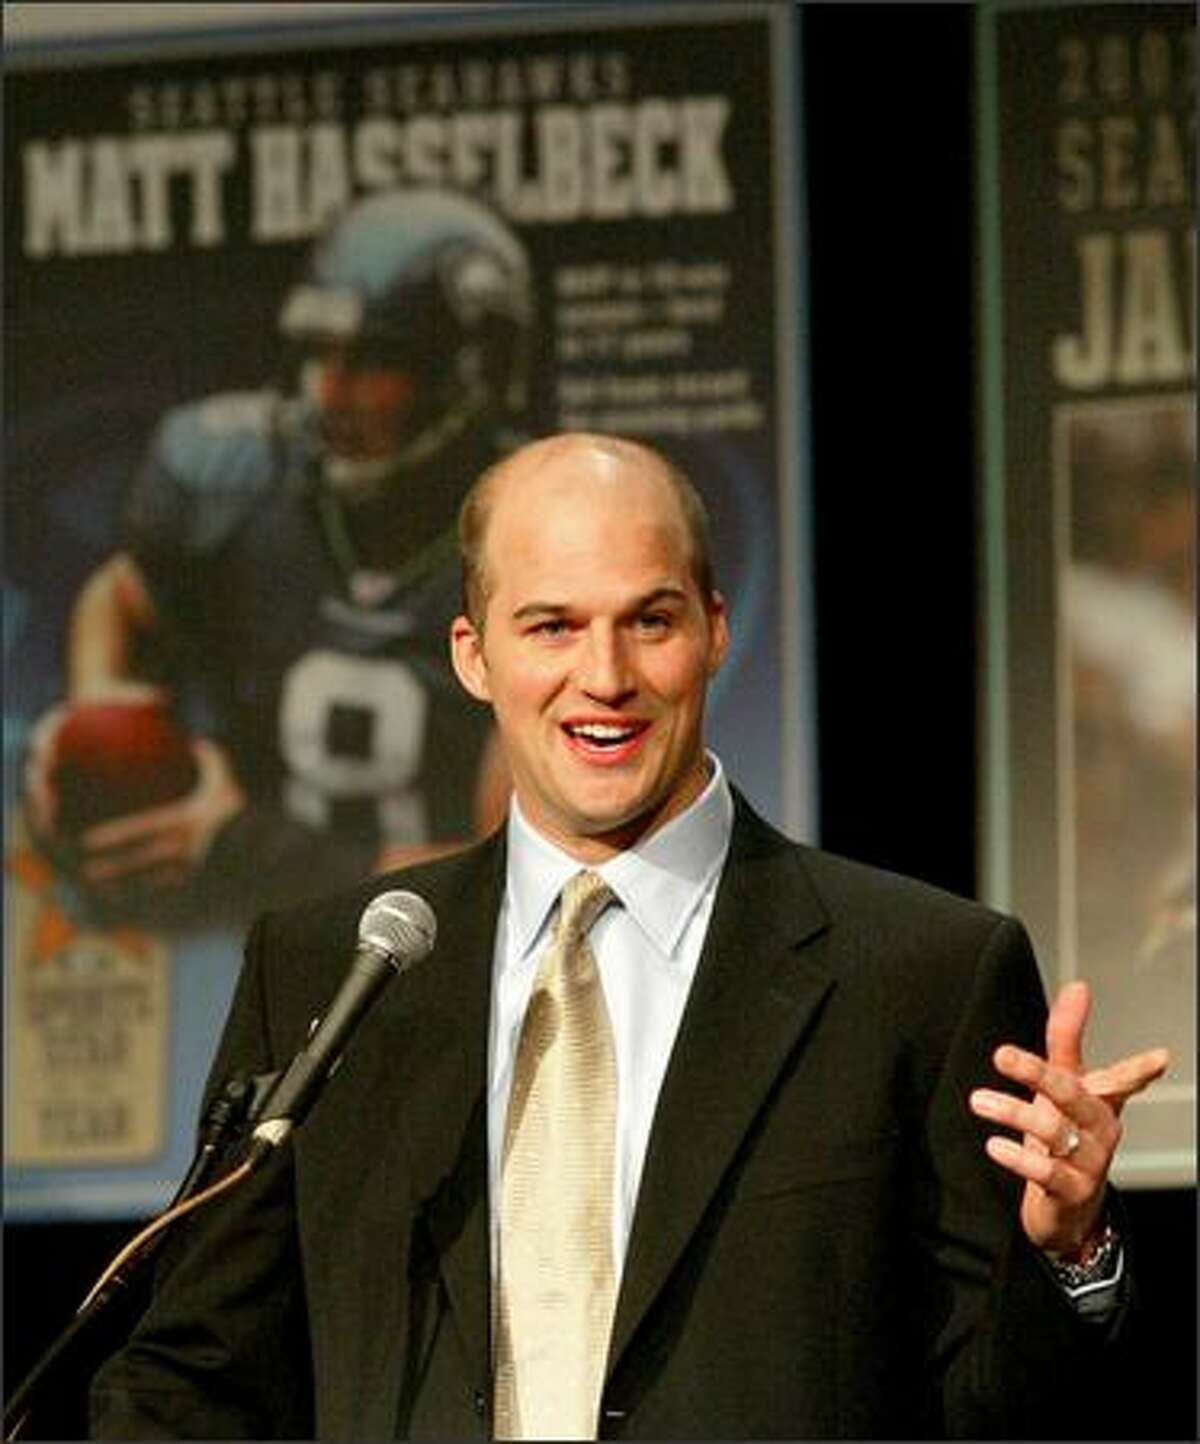 Quarterback Matt Hasselbeck became the first Seahawks player to win the P-I award since John L. Williams 15 years ago.